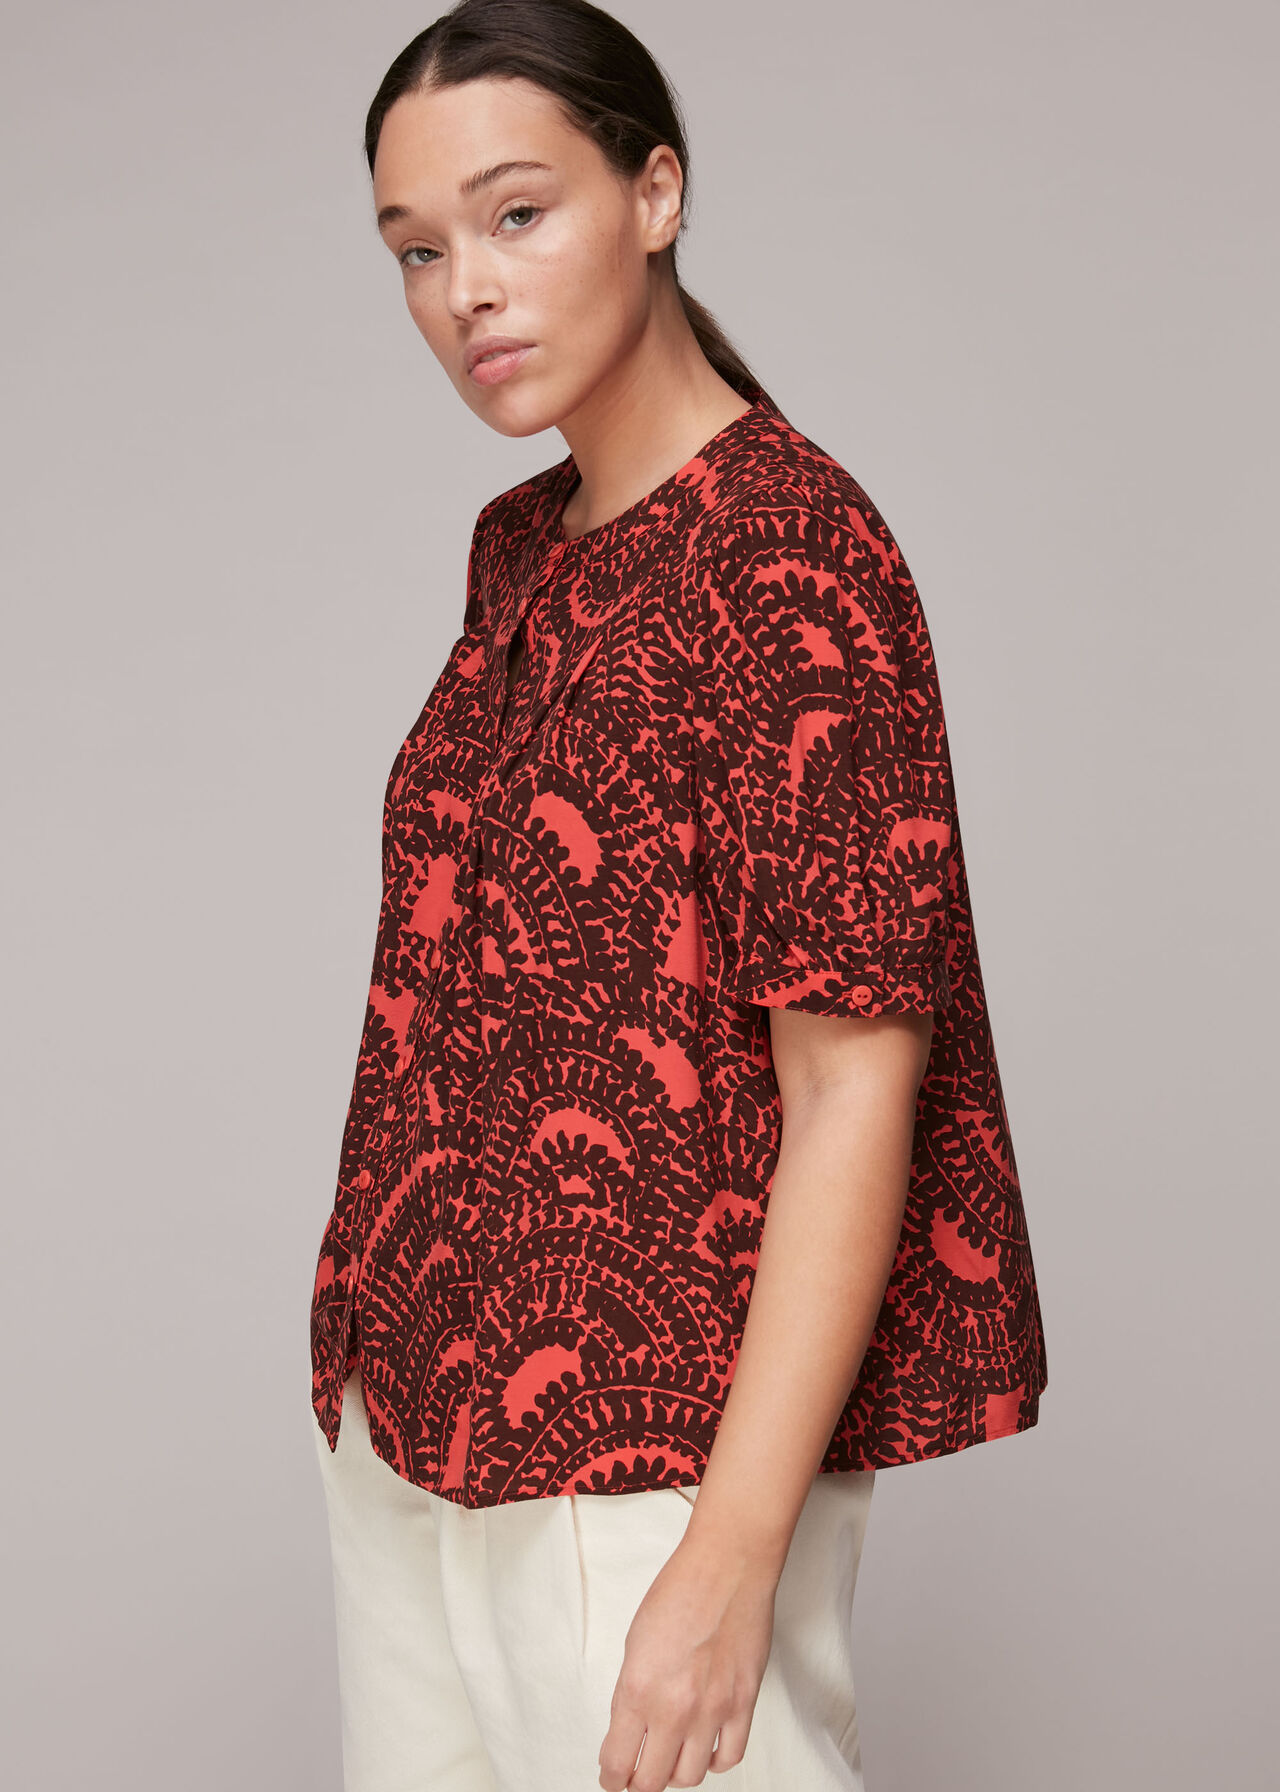 Scallop Stamped Print Blouse